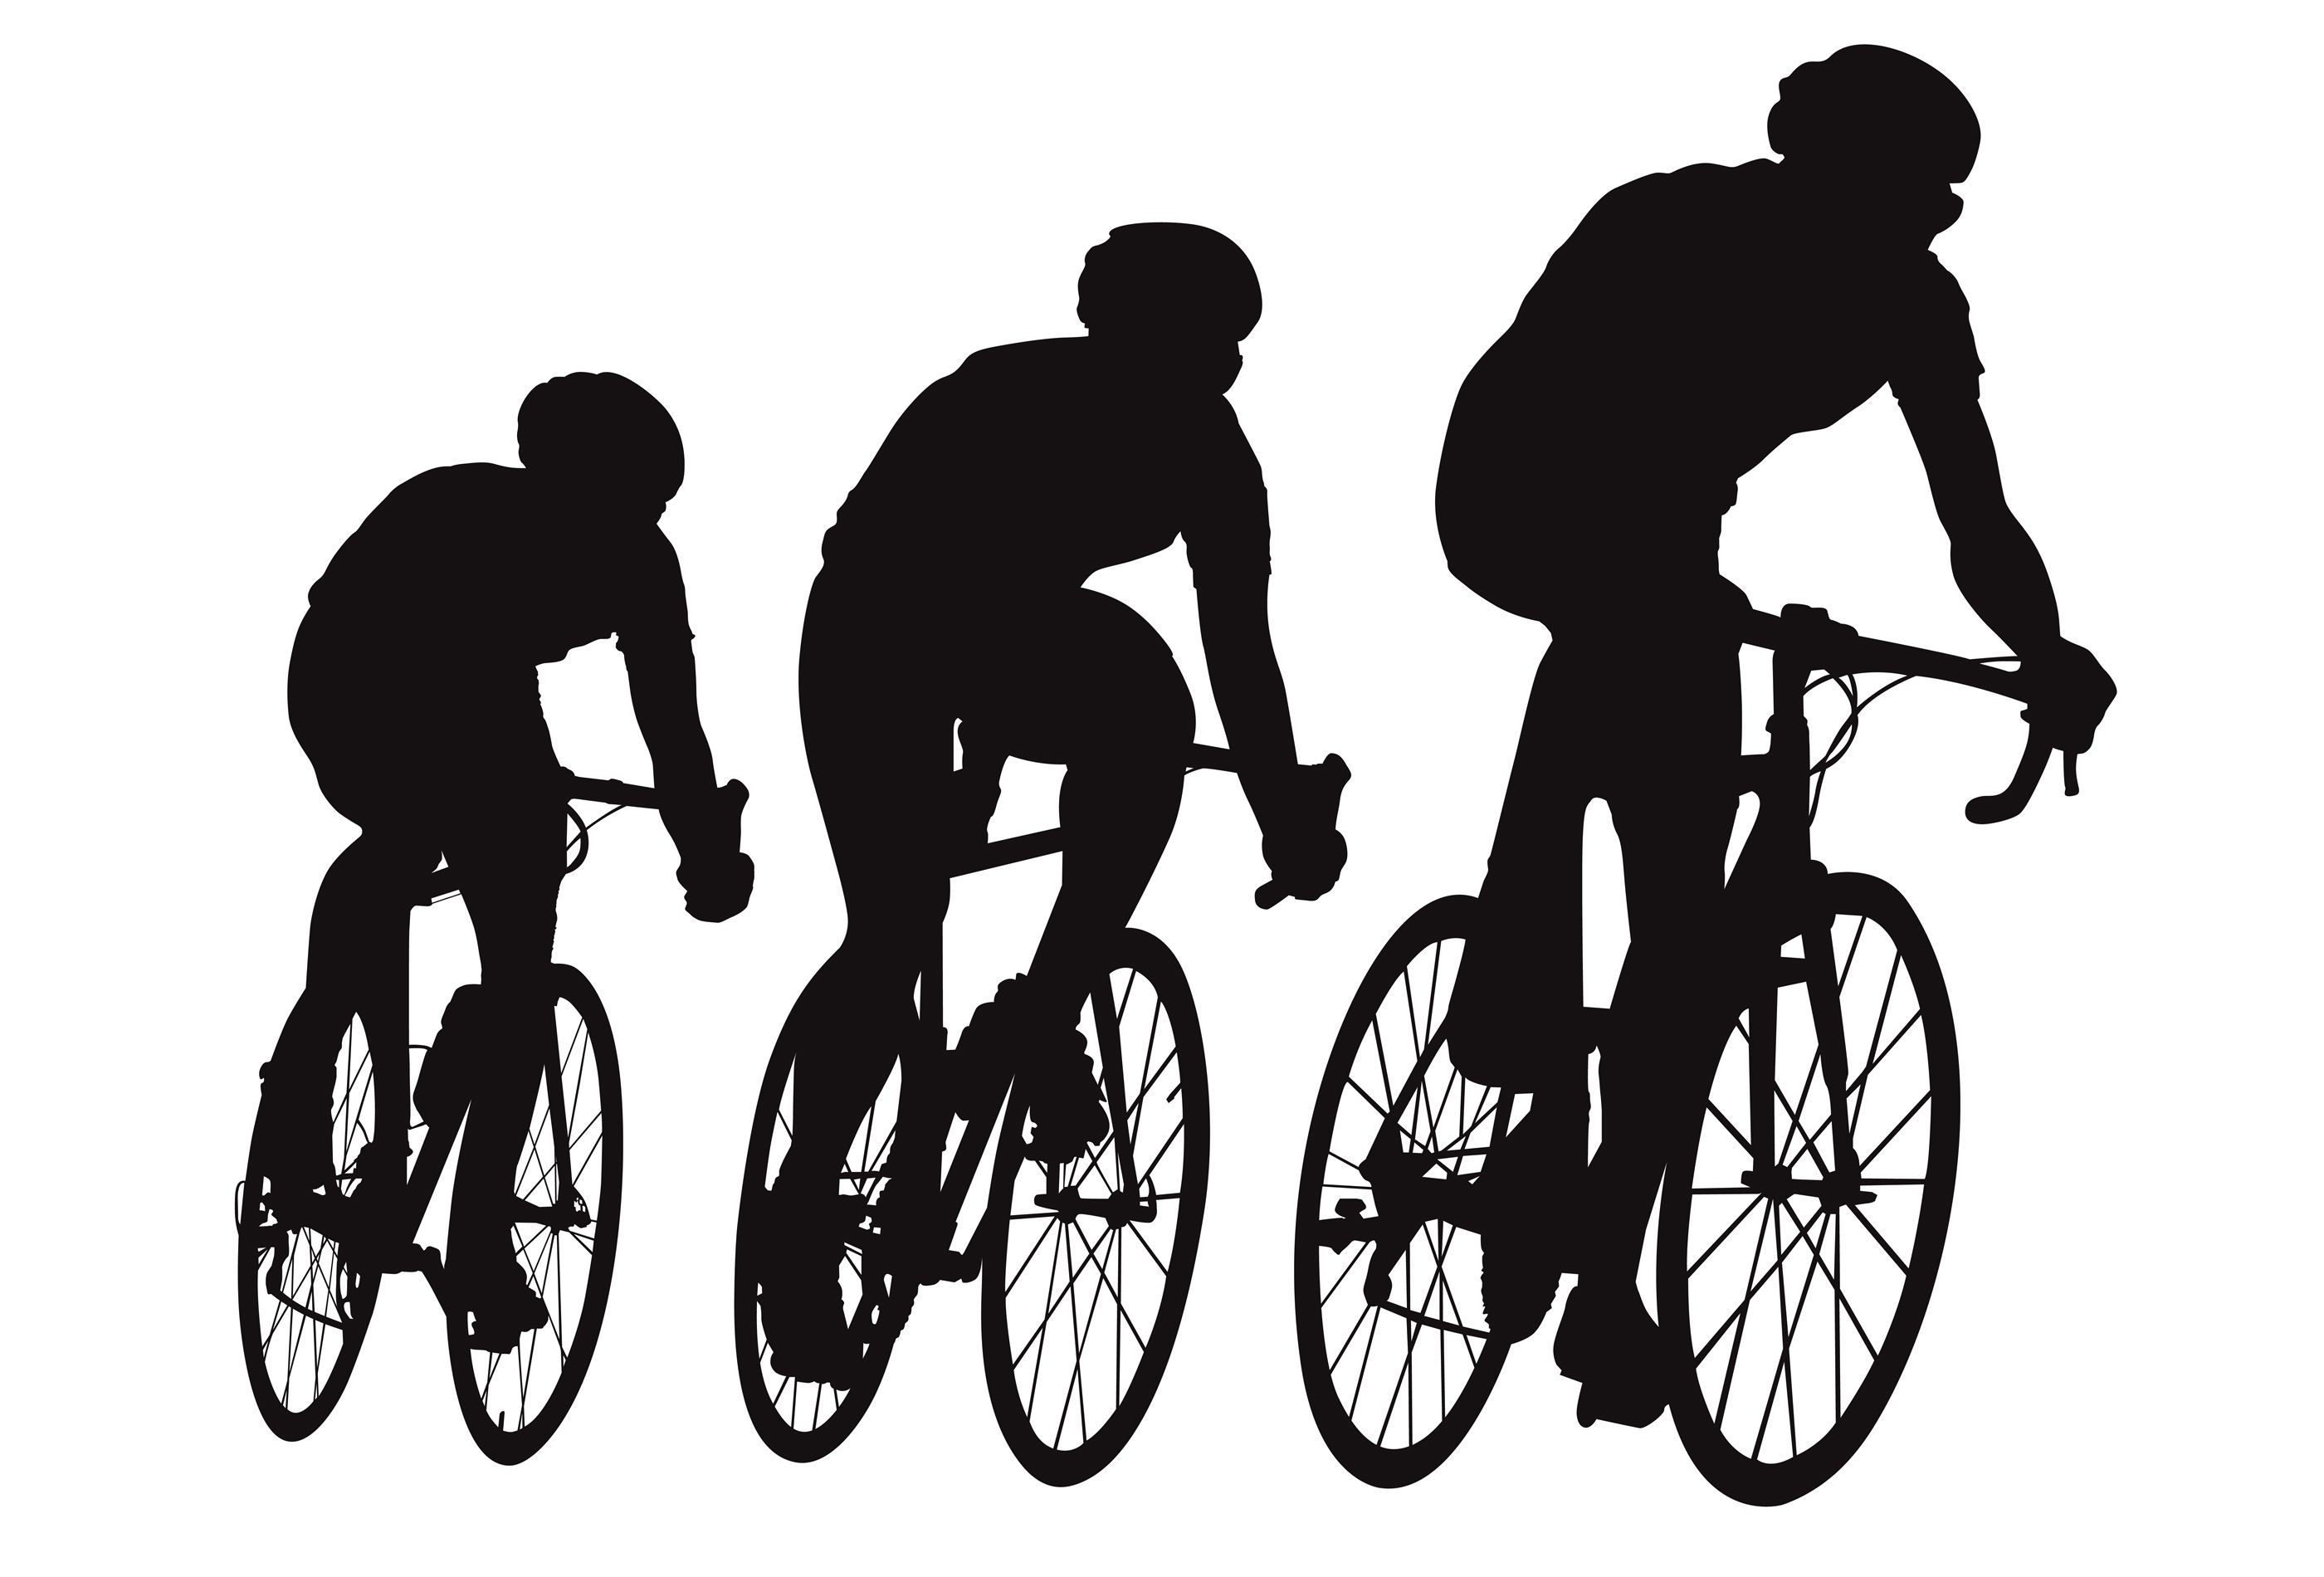 Racing Bicycle Clipart Cyclist Silhouette Hledat Googlem Plakat Kola